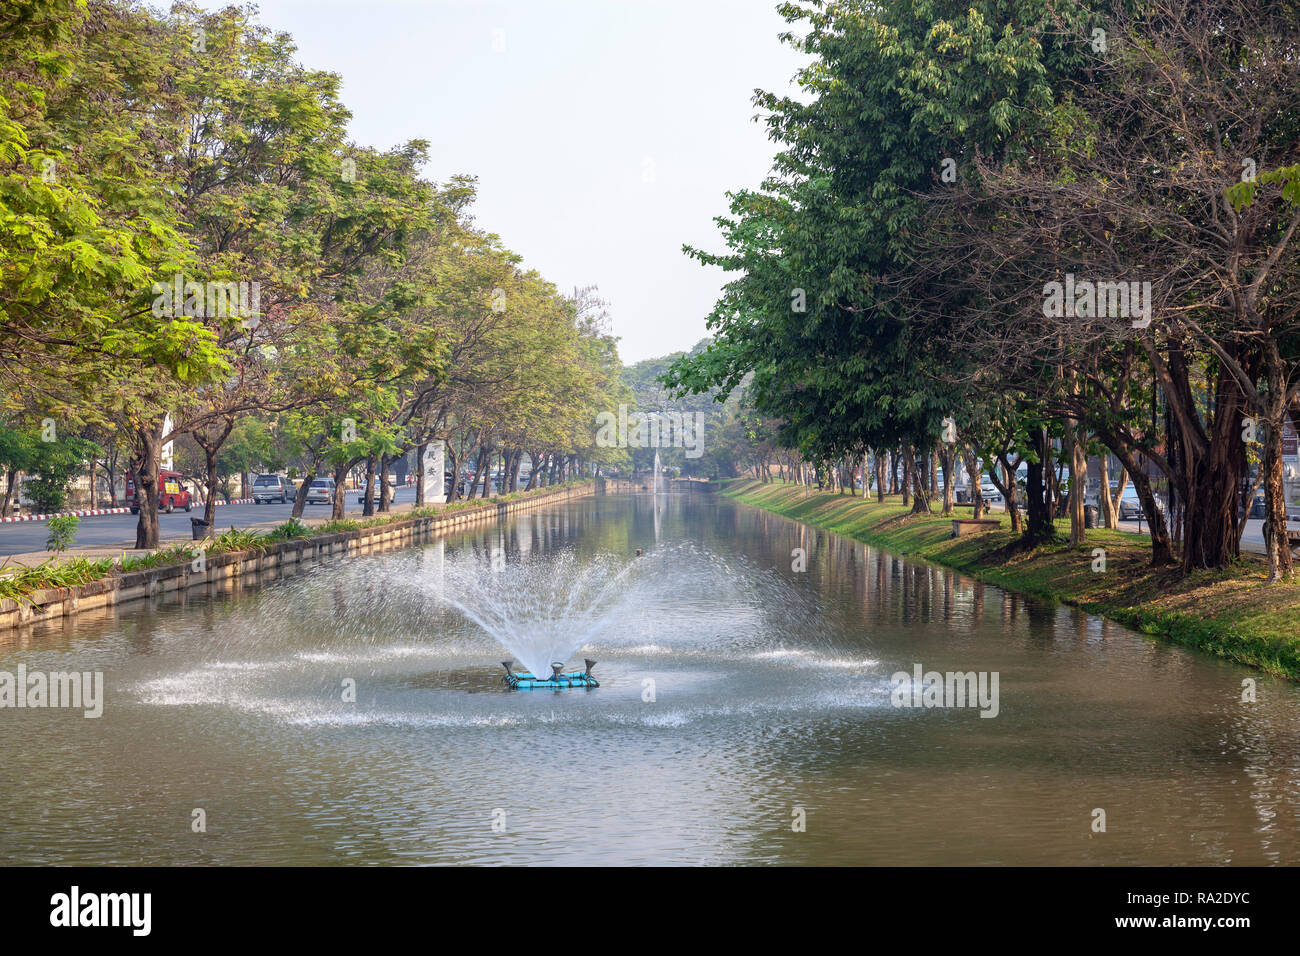 A part of the moats which surround the centre of Chiang Mai old city and its outer walls (Thailand). Here, the intense car traffic is particular: - Stock Image